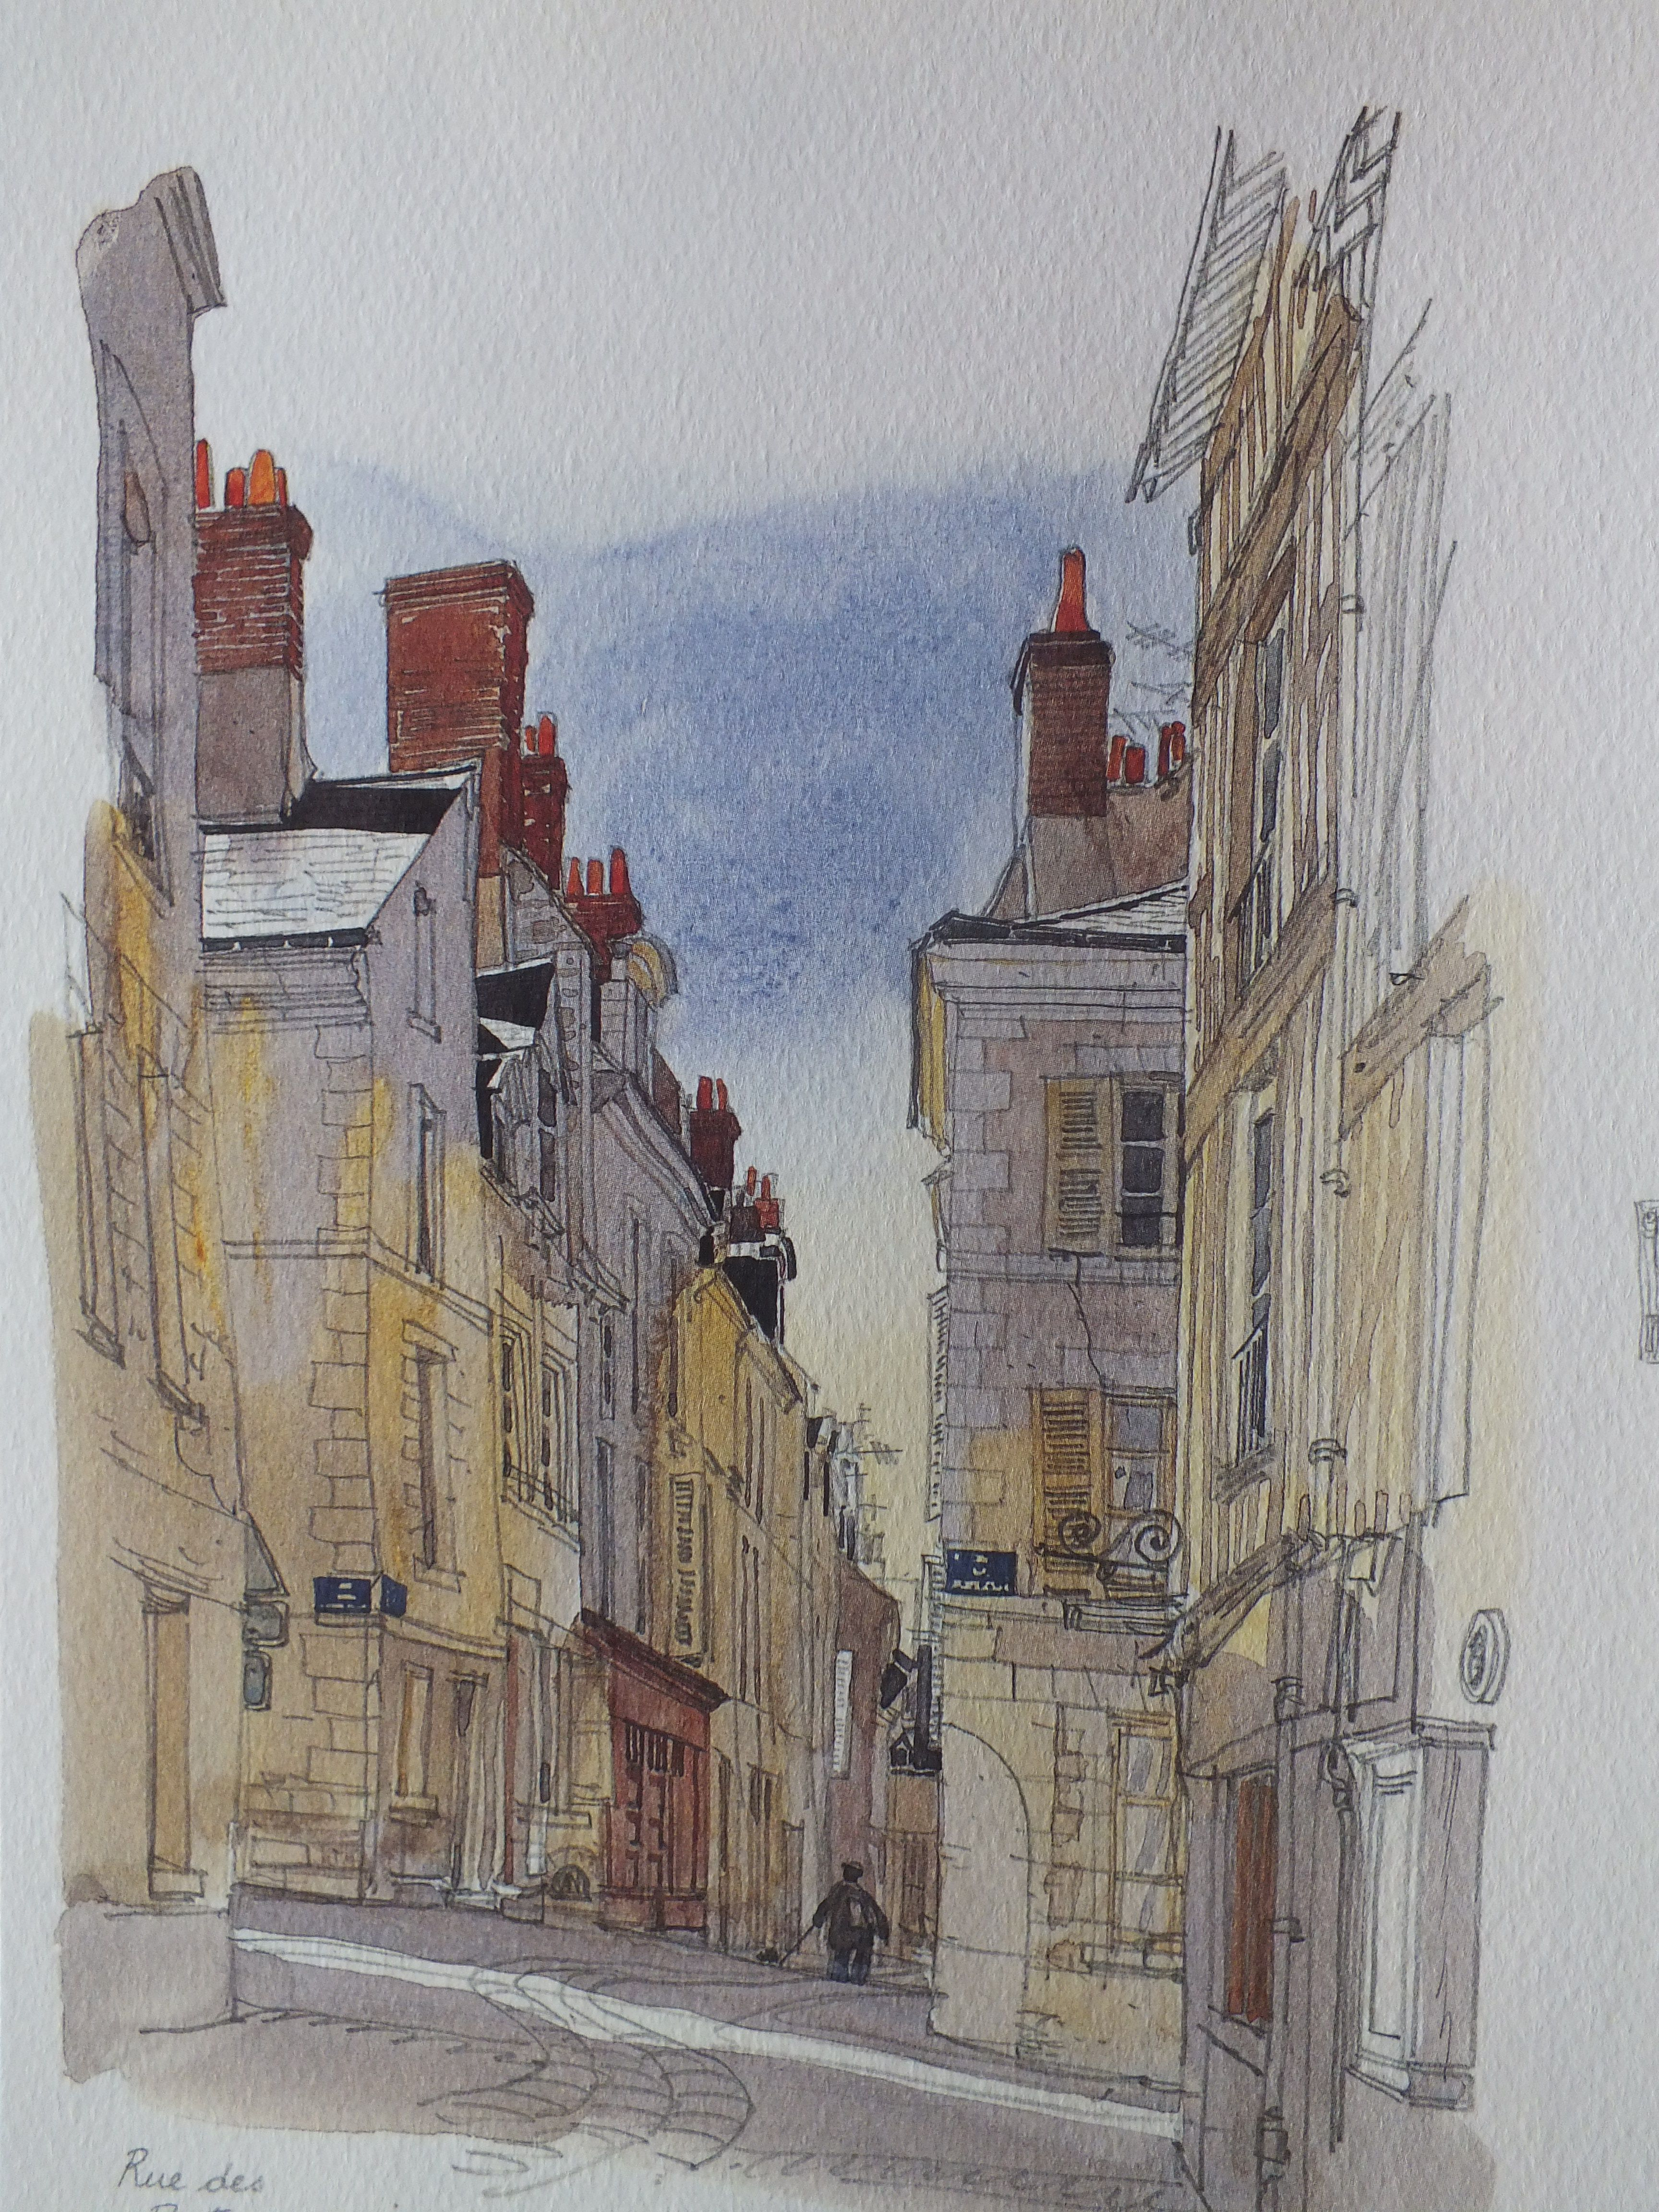 Painting By Fabrice Moireau Fabrice Moireau Croquis Aquarelle